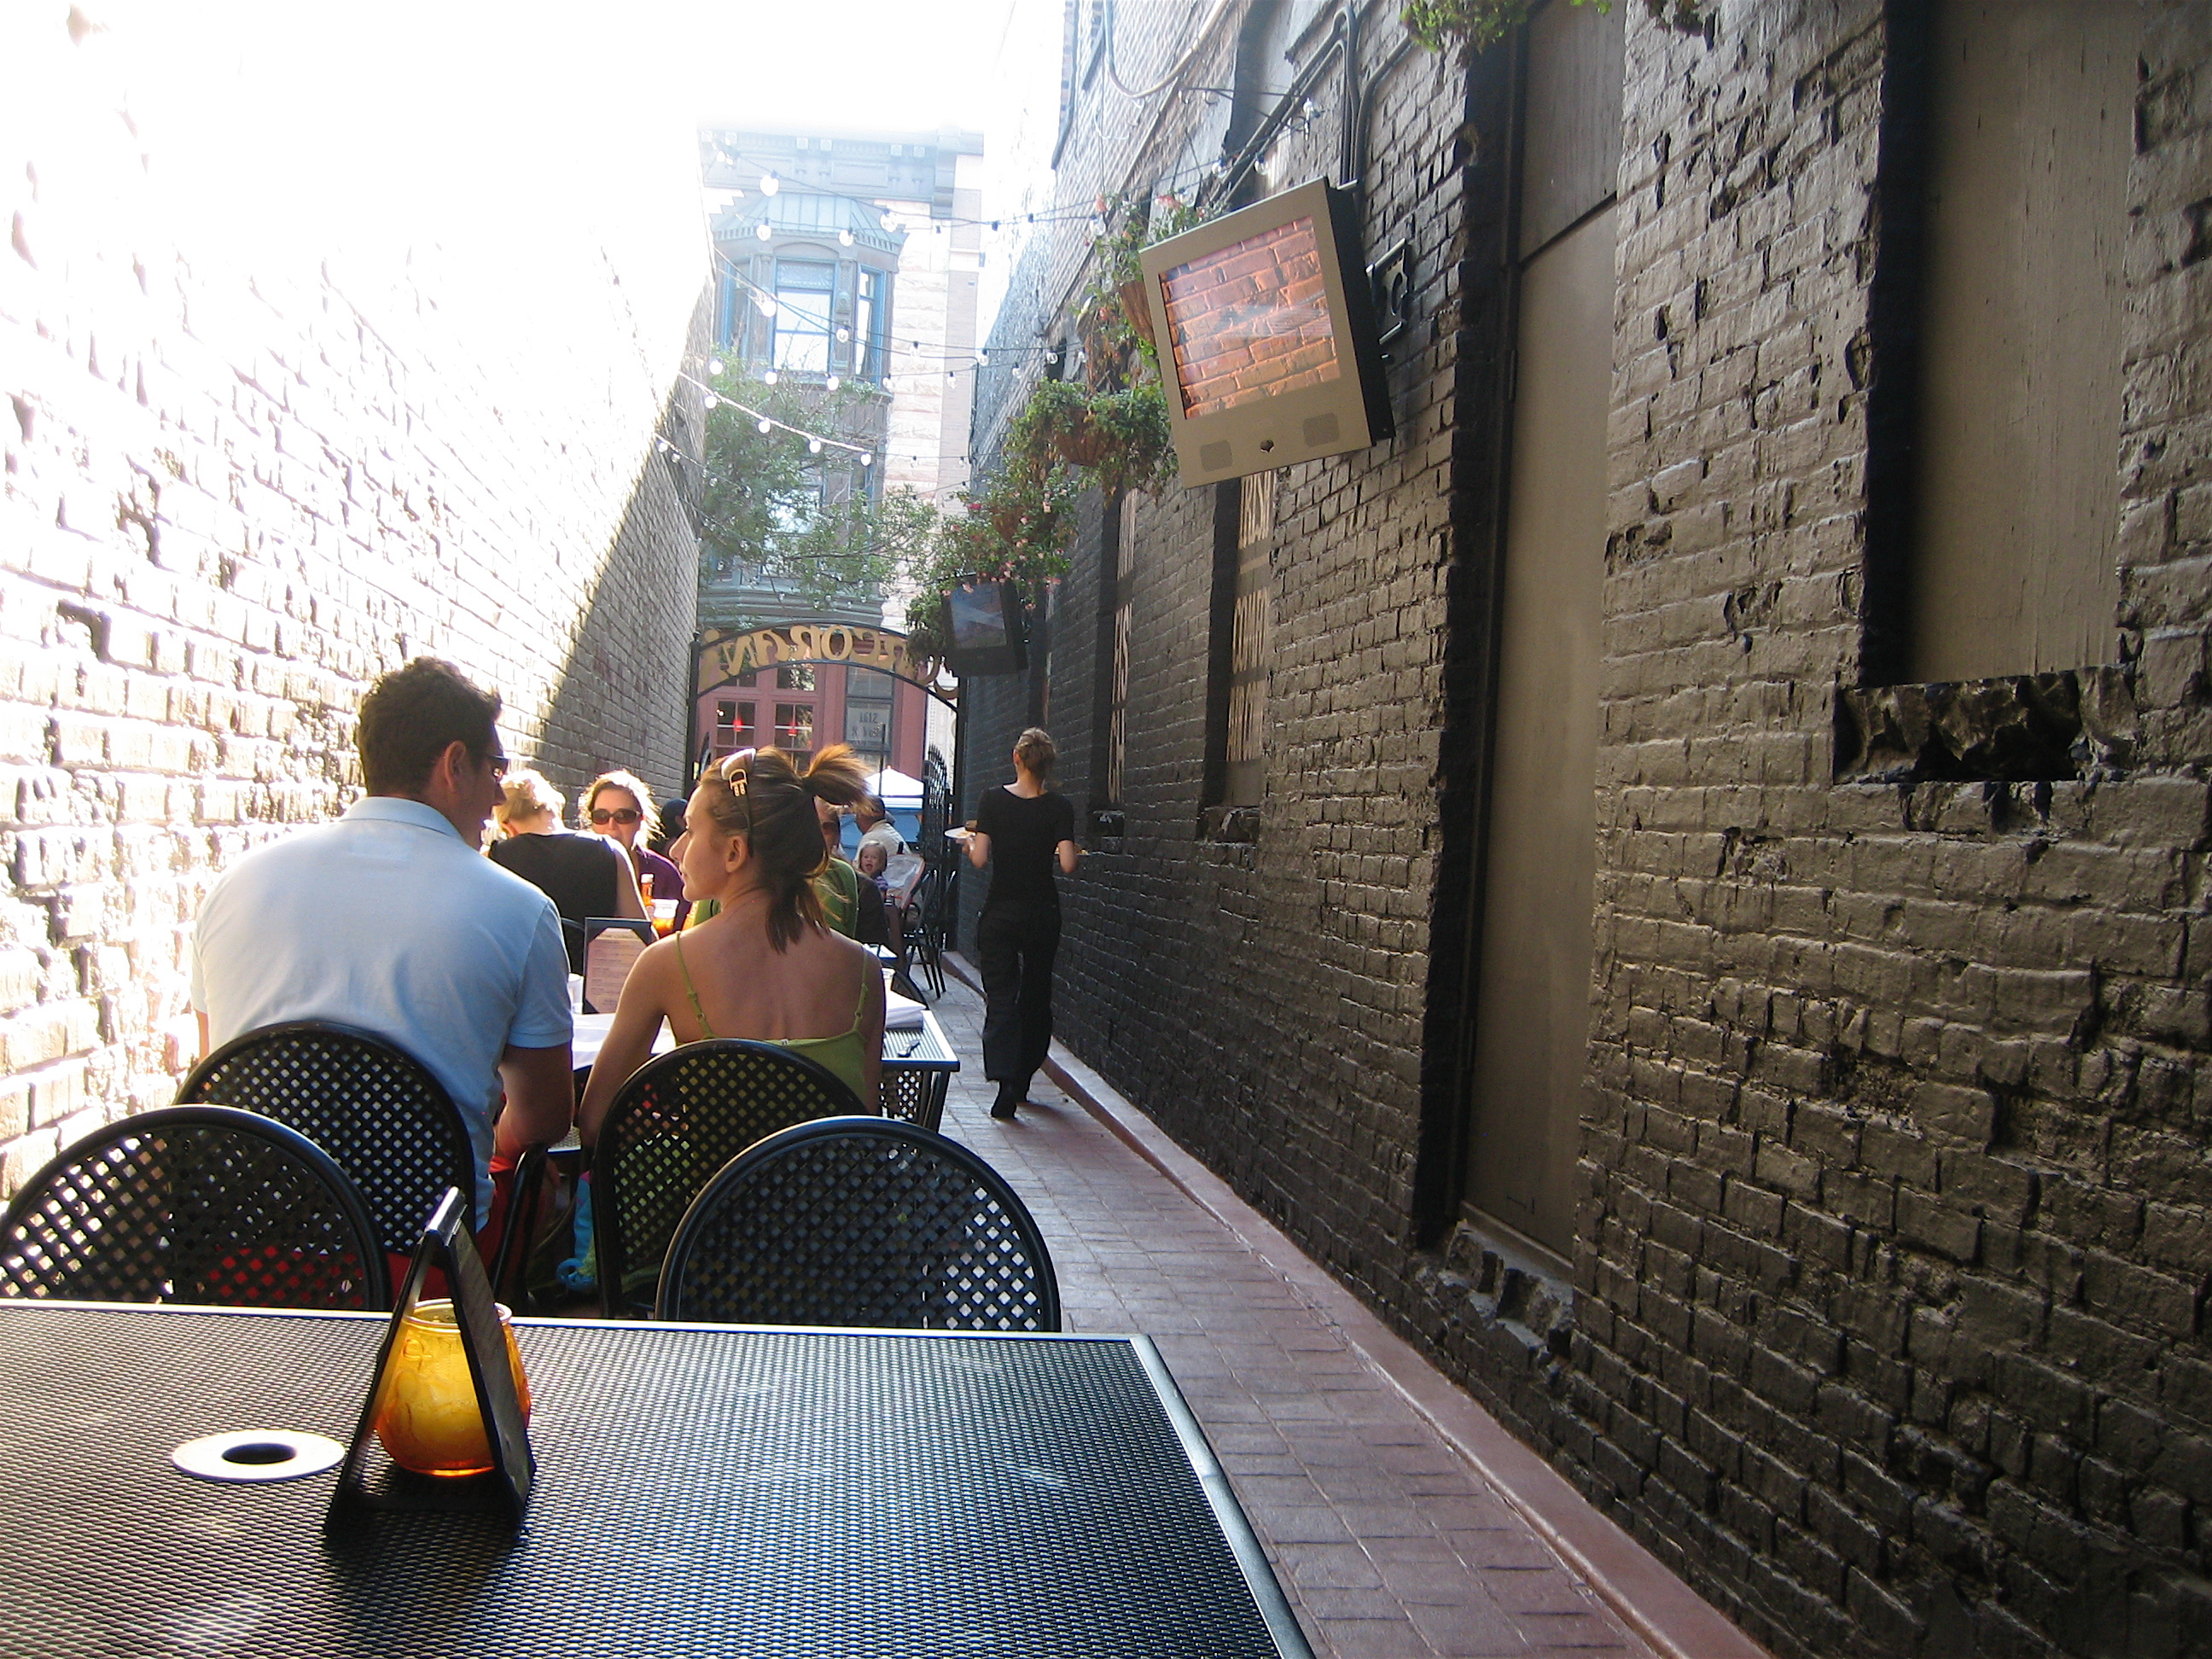 Cool alley, unnecessary TVs